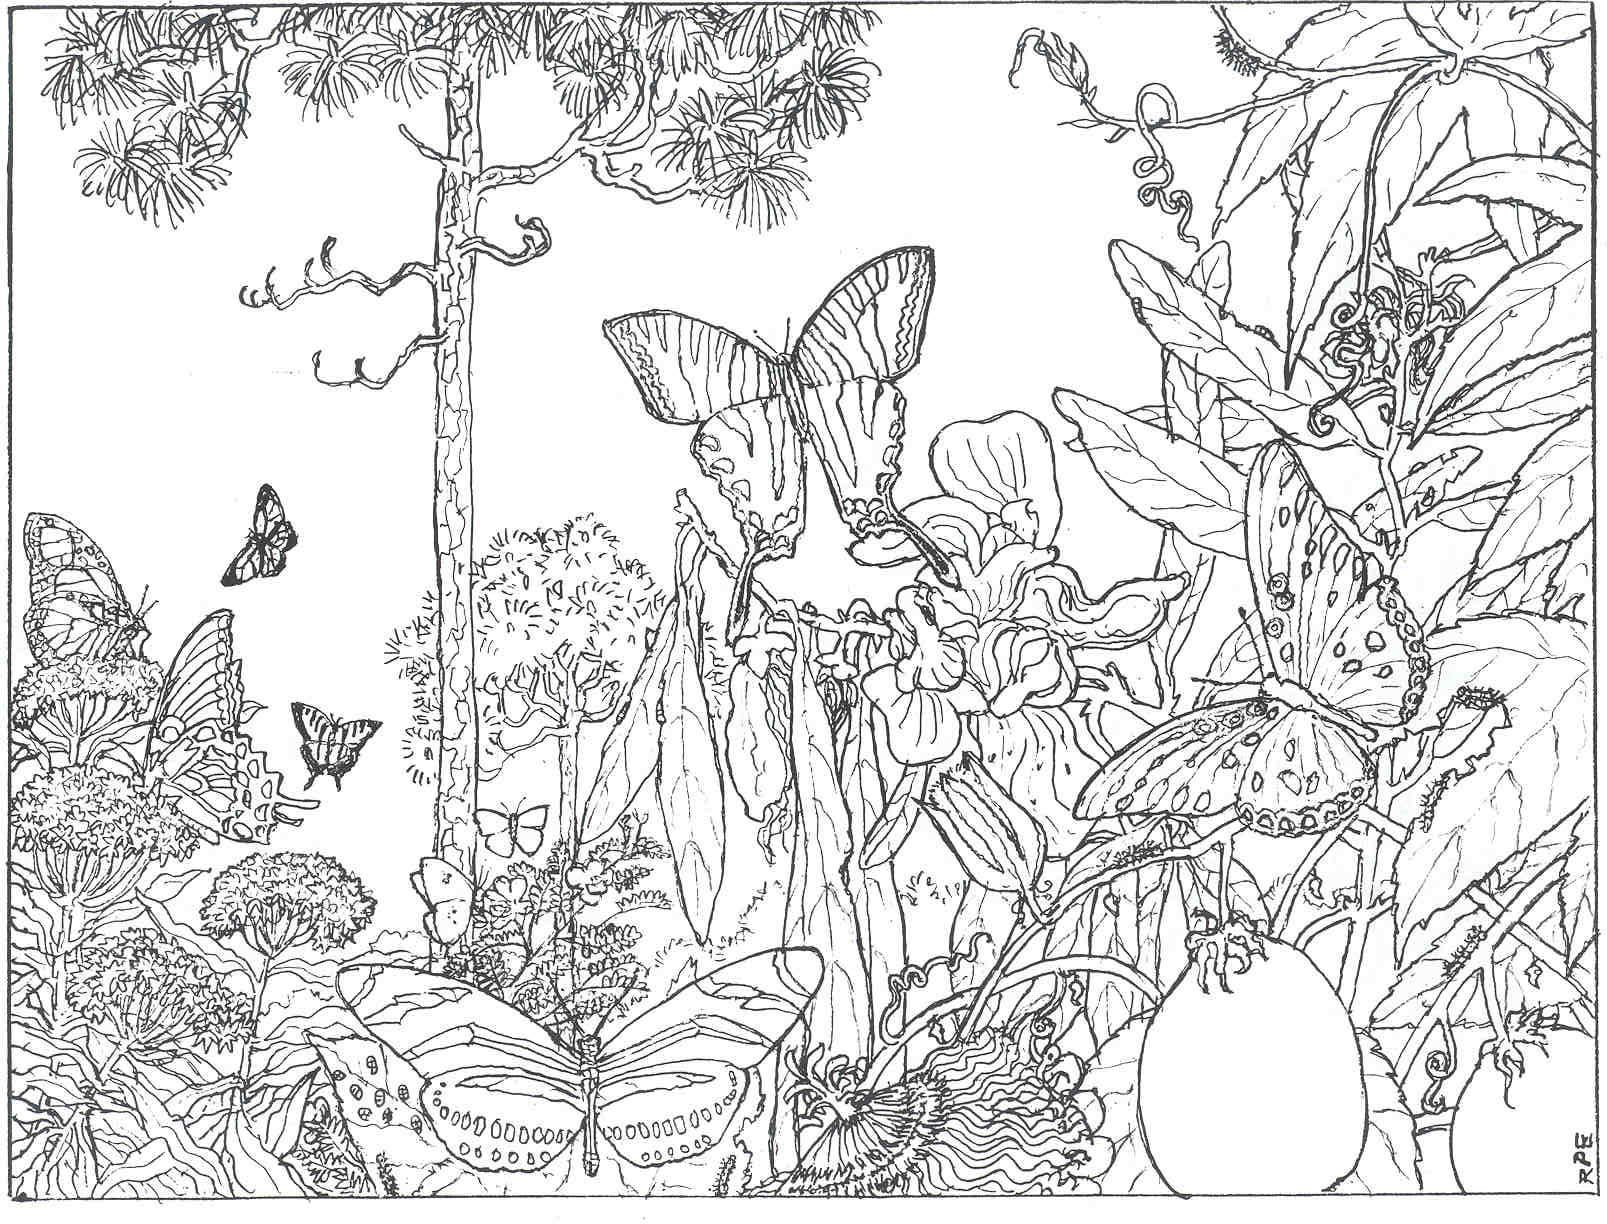 Free printable coloring pages nature - Free Printable Adult Coloring Pages Free Coloring Pages For Kids 288313 Free Printable Coloring Pages Adults